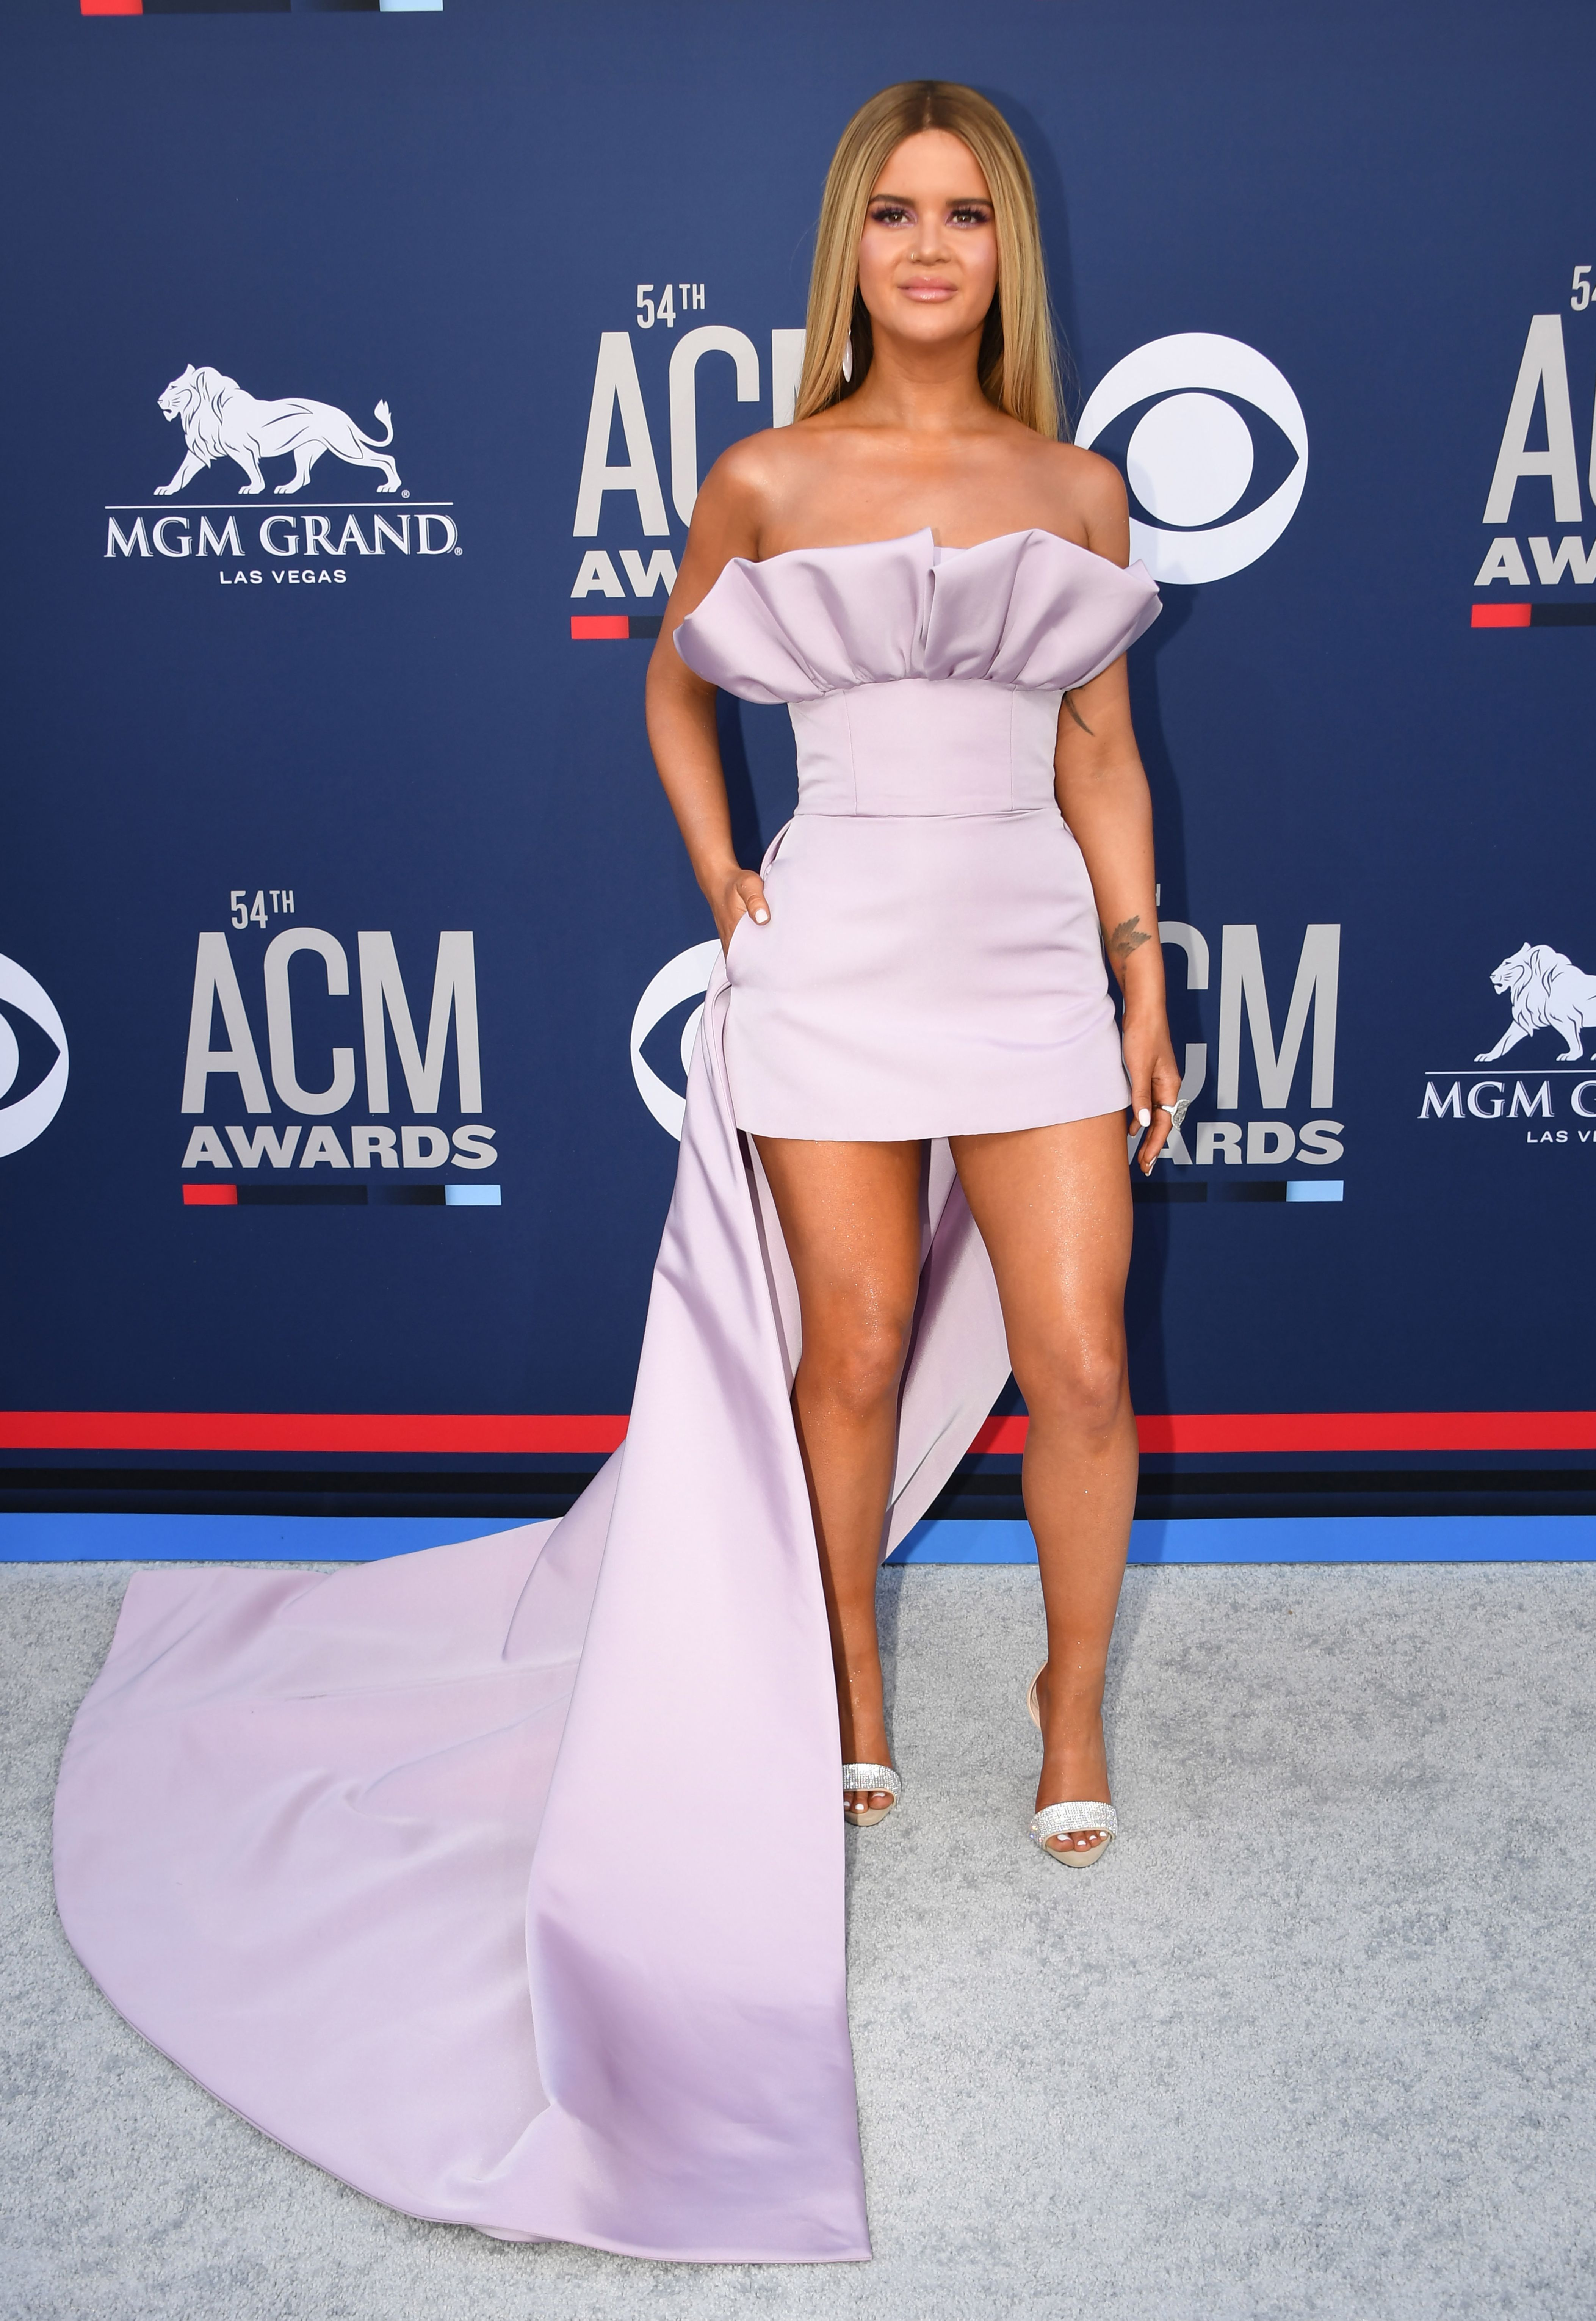 Maren Morris At The 54th Academy Of Country Music Awards Maren Morris Wowed On The Red Carpet American Country Music Awards Country Music Country Music Awards